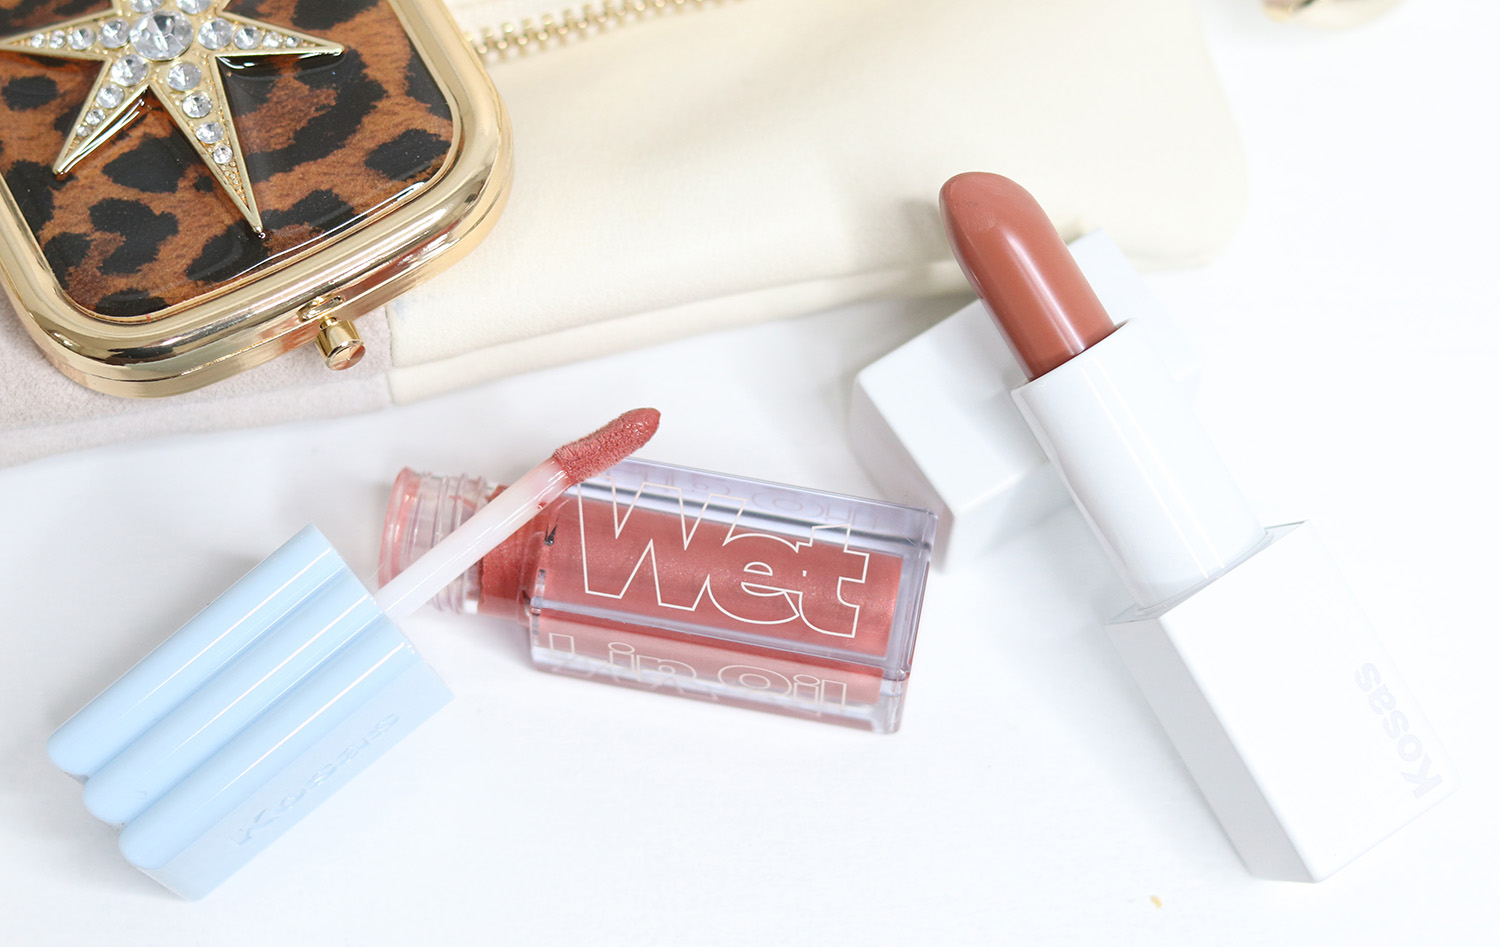 KOSAS Wet Lip Oil in Dip and KOSAS Weightless Lipstick in Vegas review and swatches